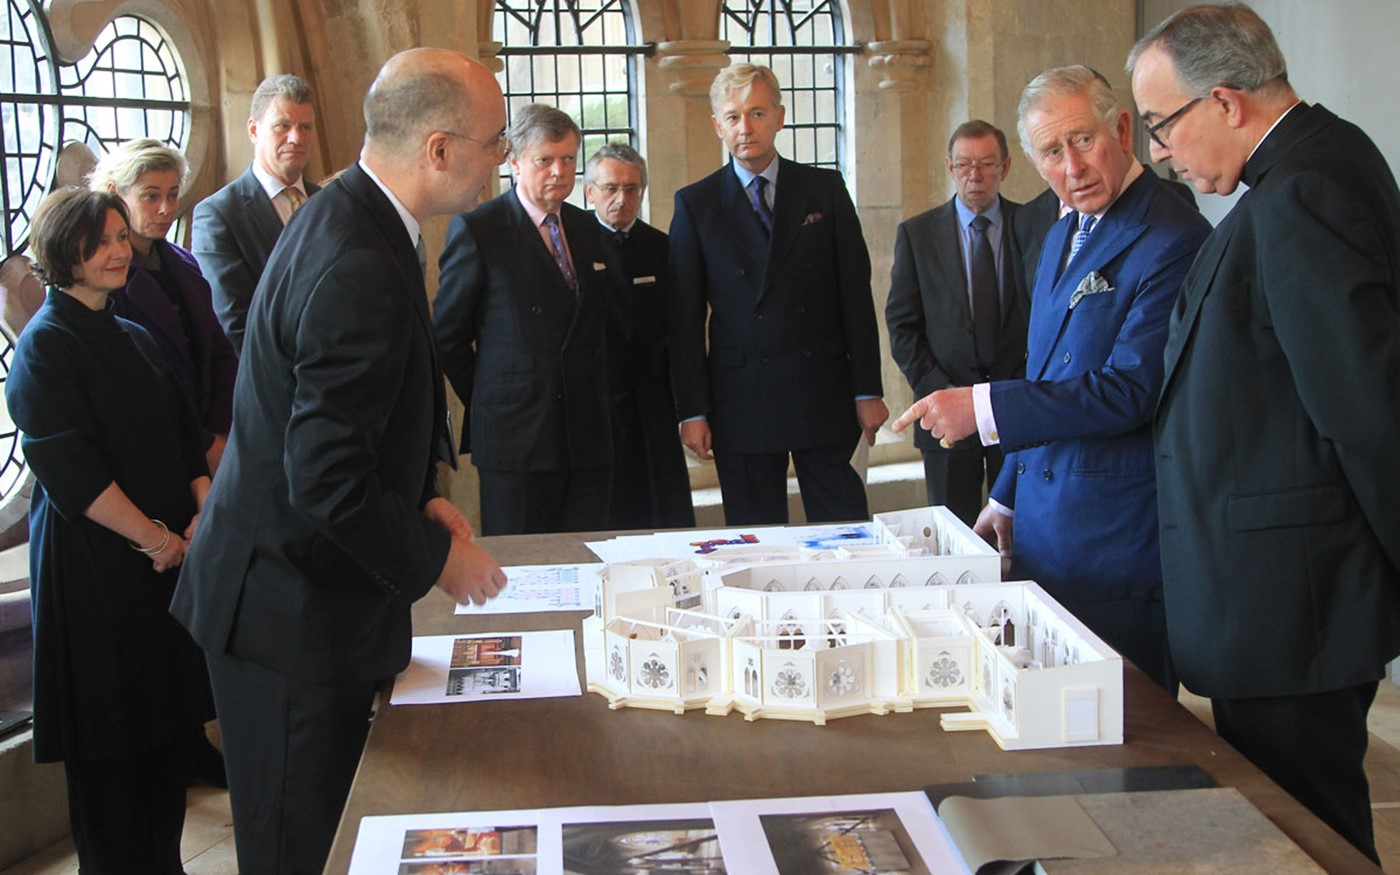 HRH The Prince of Wales meets specialists working on the project and is shown a model of the new galleries